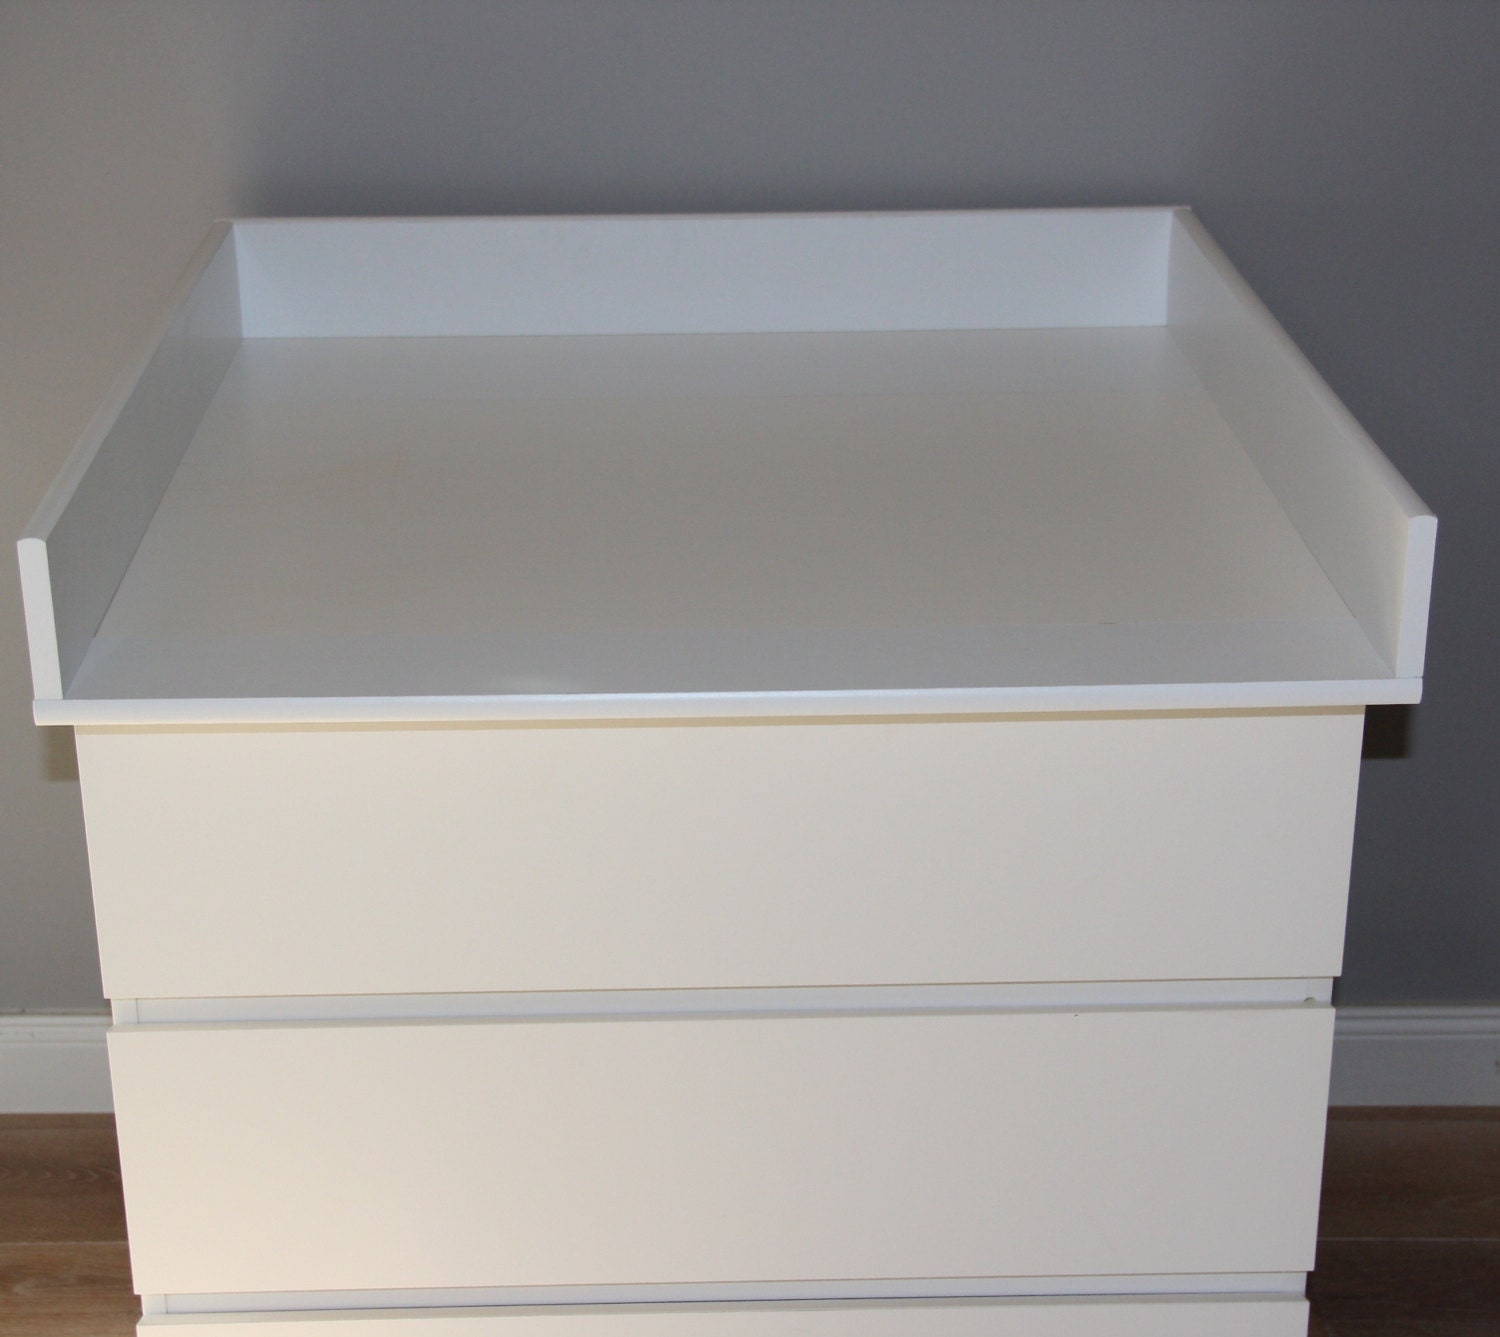 Ikea Vinstra Frisiertisch Mit Spiegel ~ Round edges Changing table for IKEA Malm dresser by PuckDaddy88